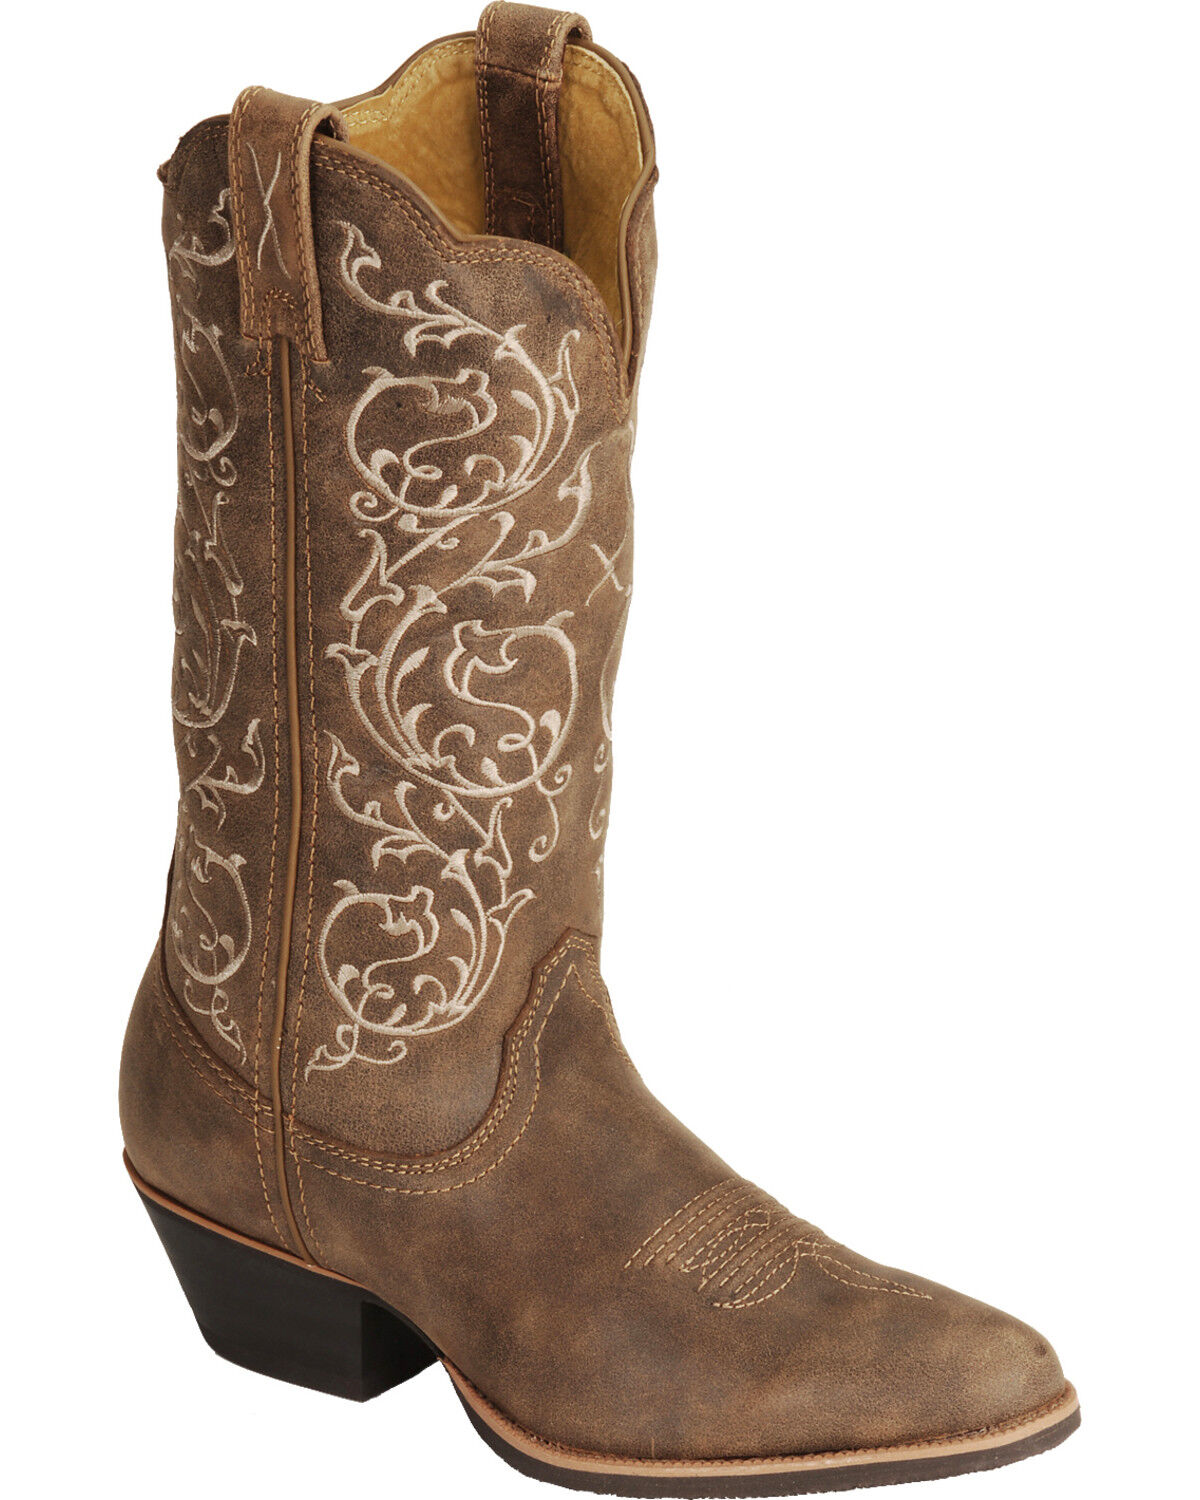 Women's Cowgirl Boots - Boot Barn